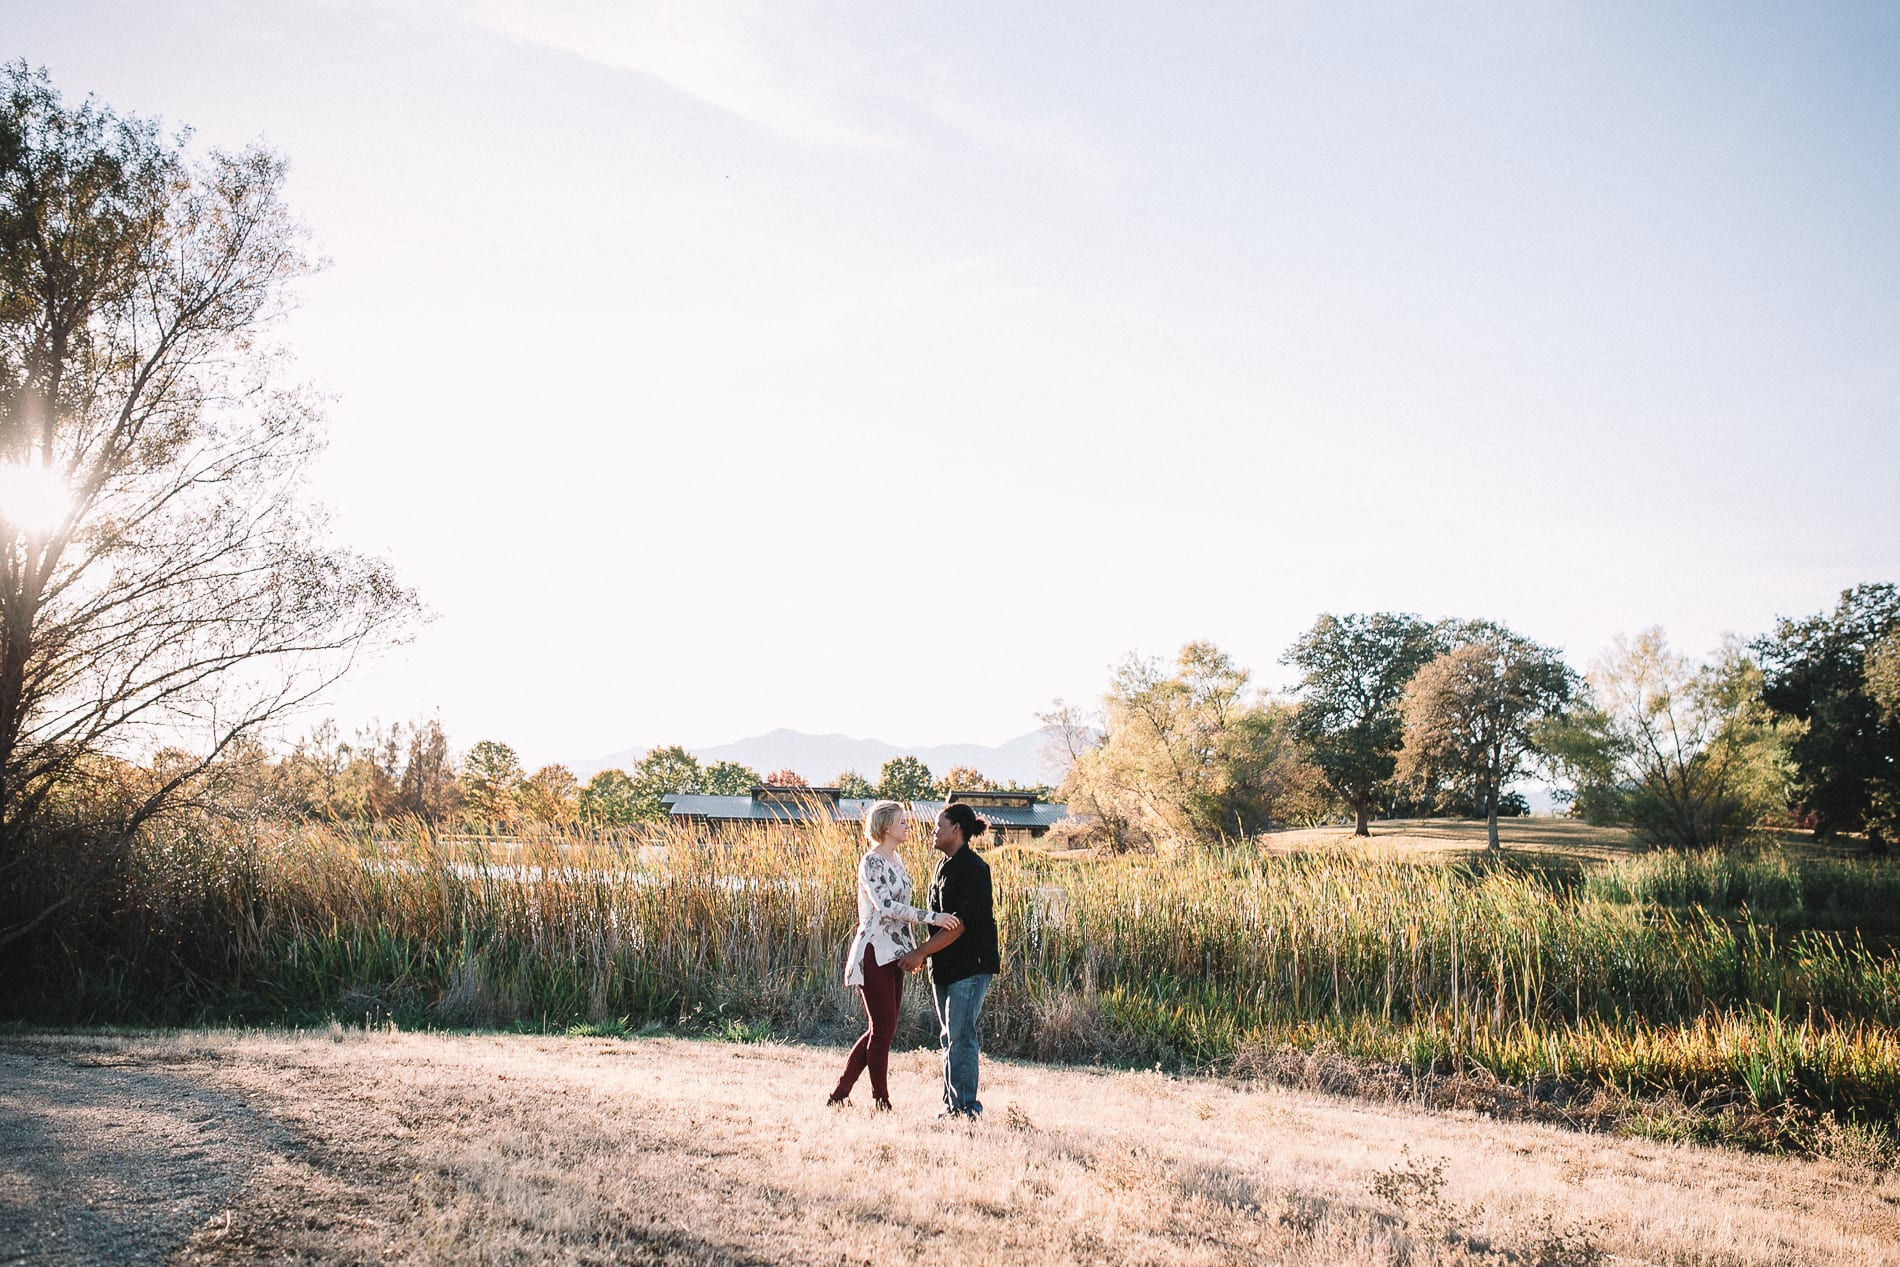 redding-lema-ranch-engagement-photo-11